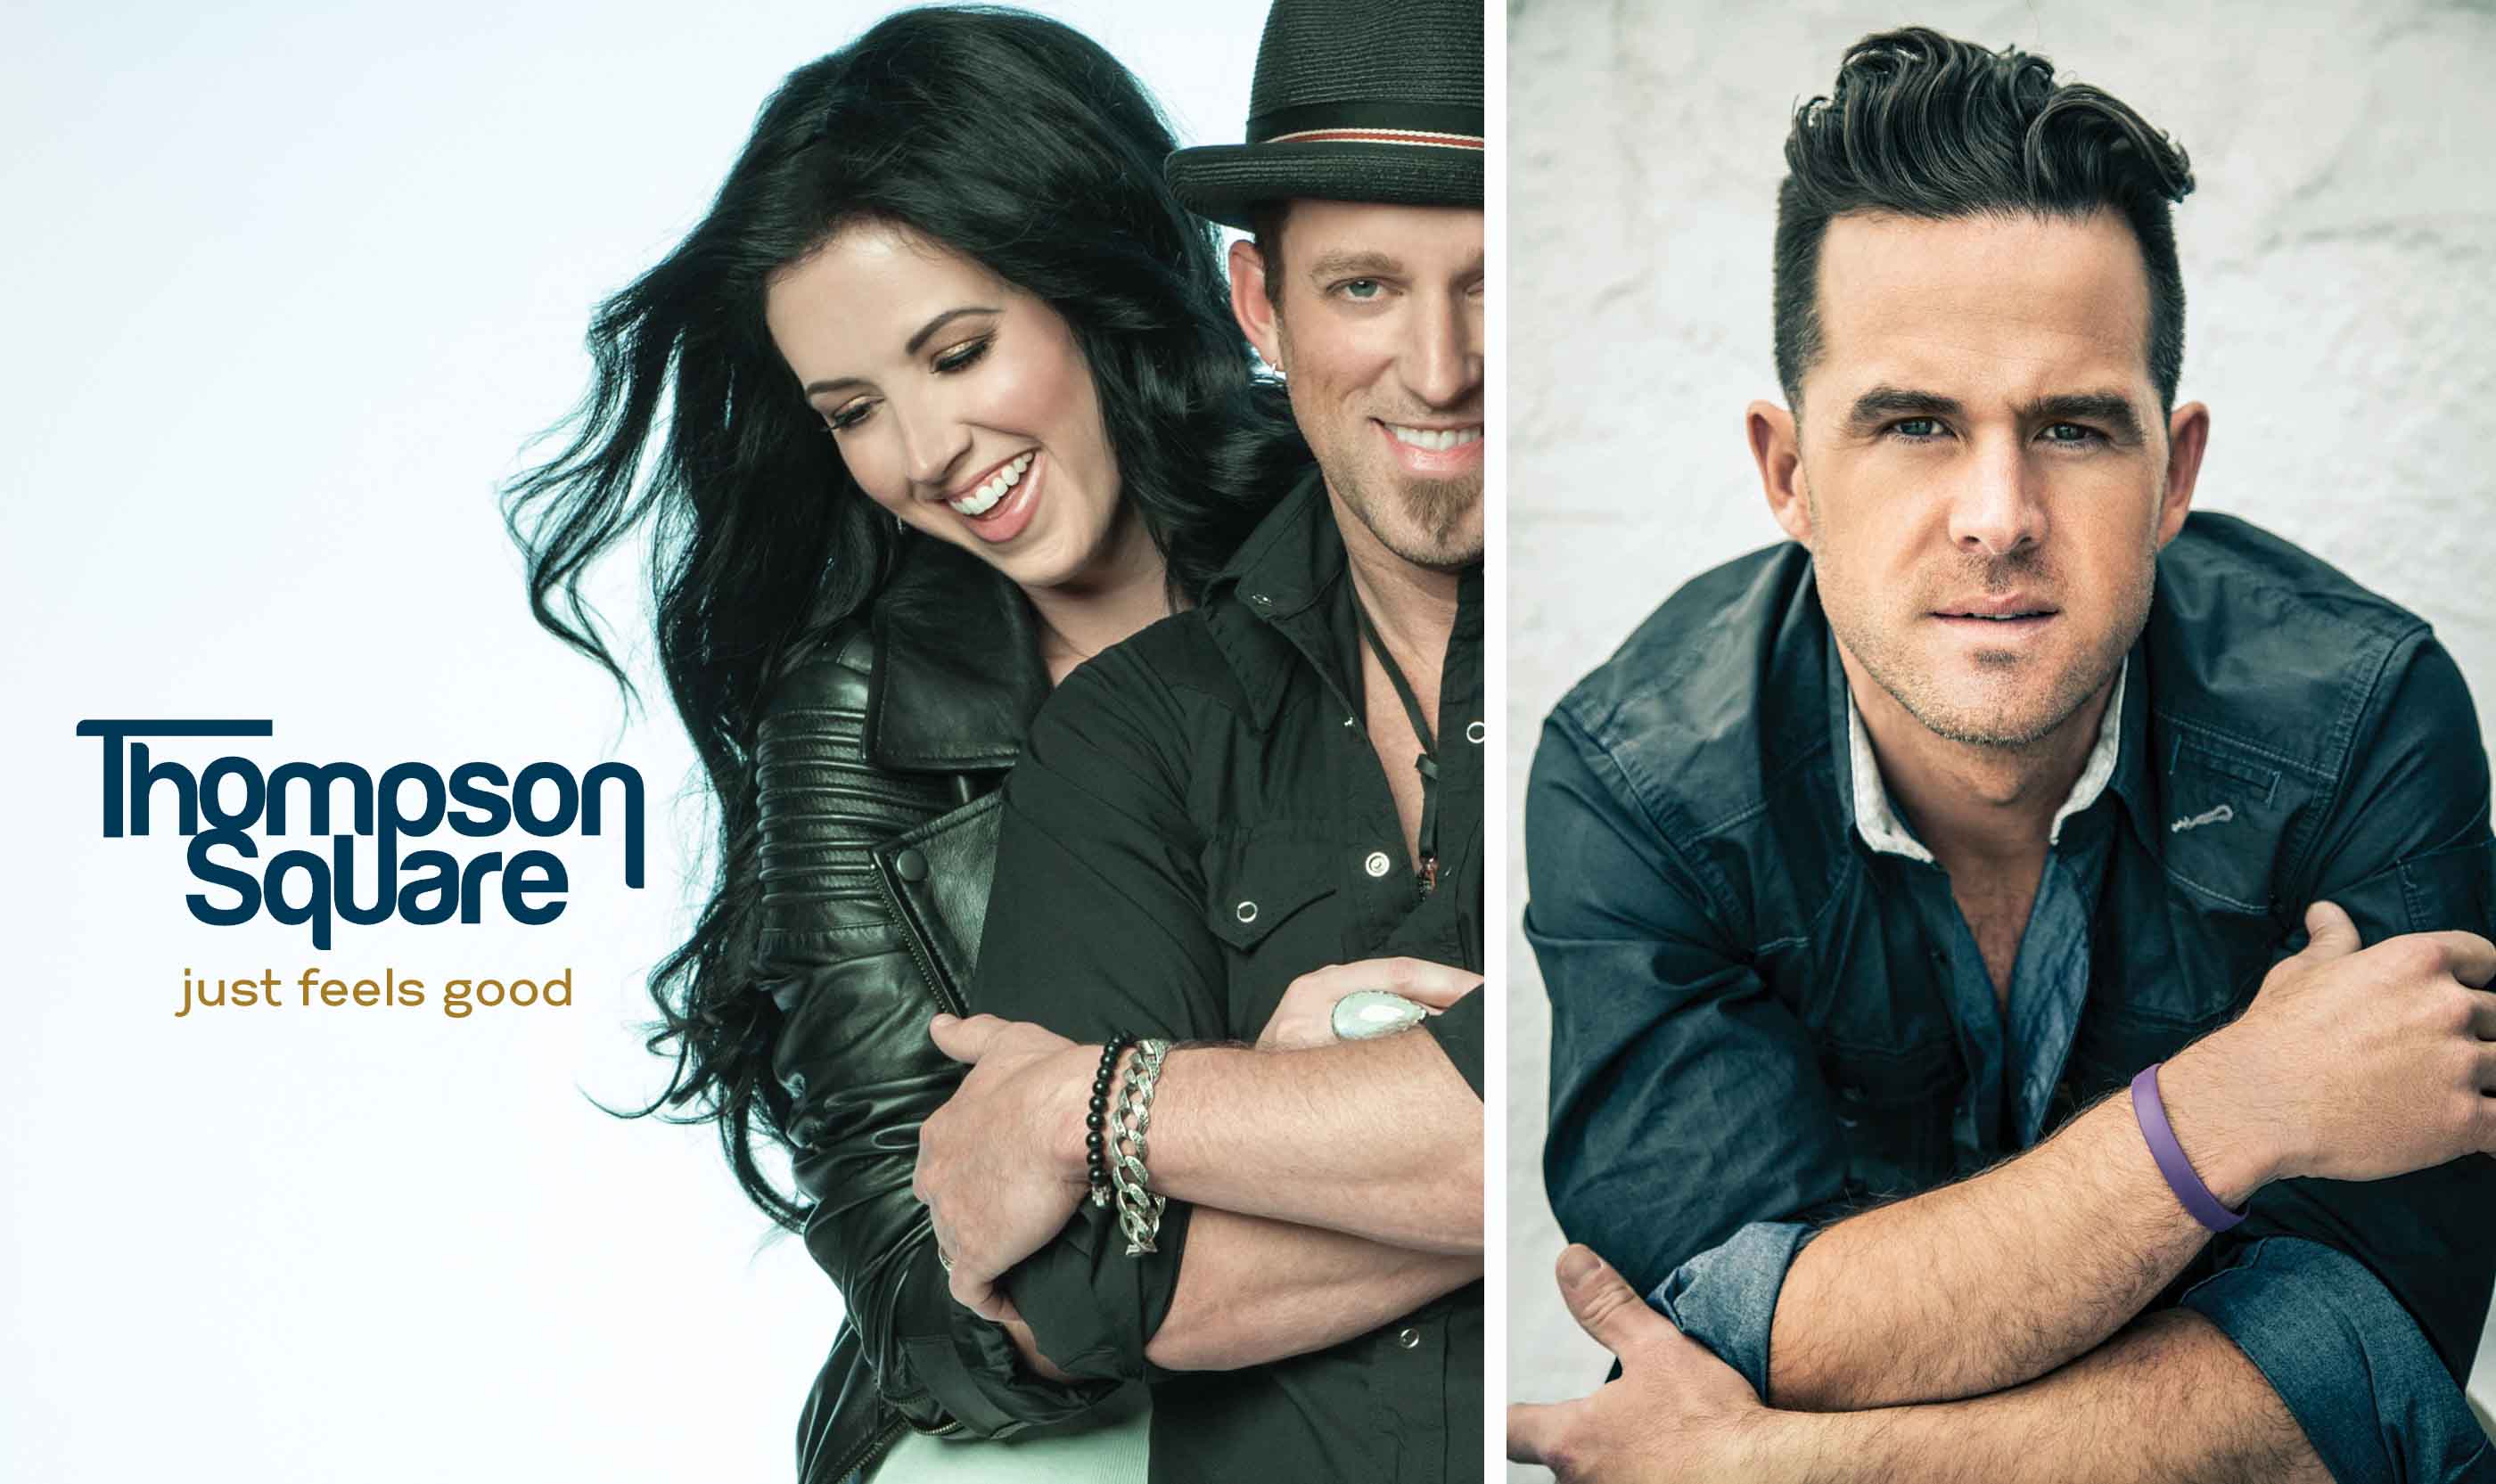 Show Preview: Thompson Square & David Nail at Kingsport Fun Fest 7/17